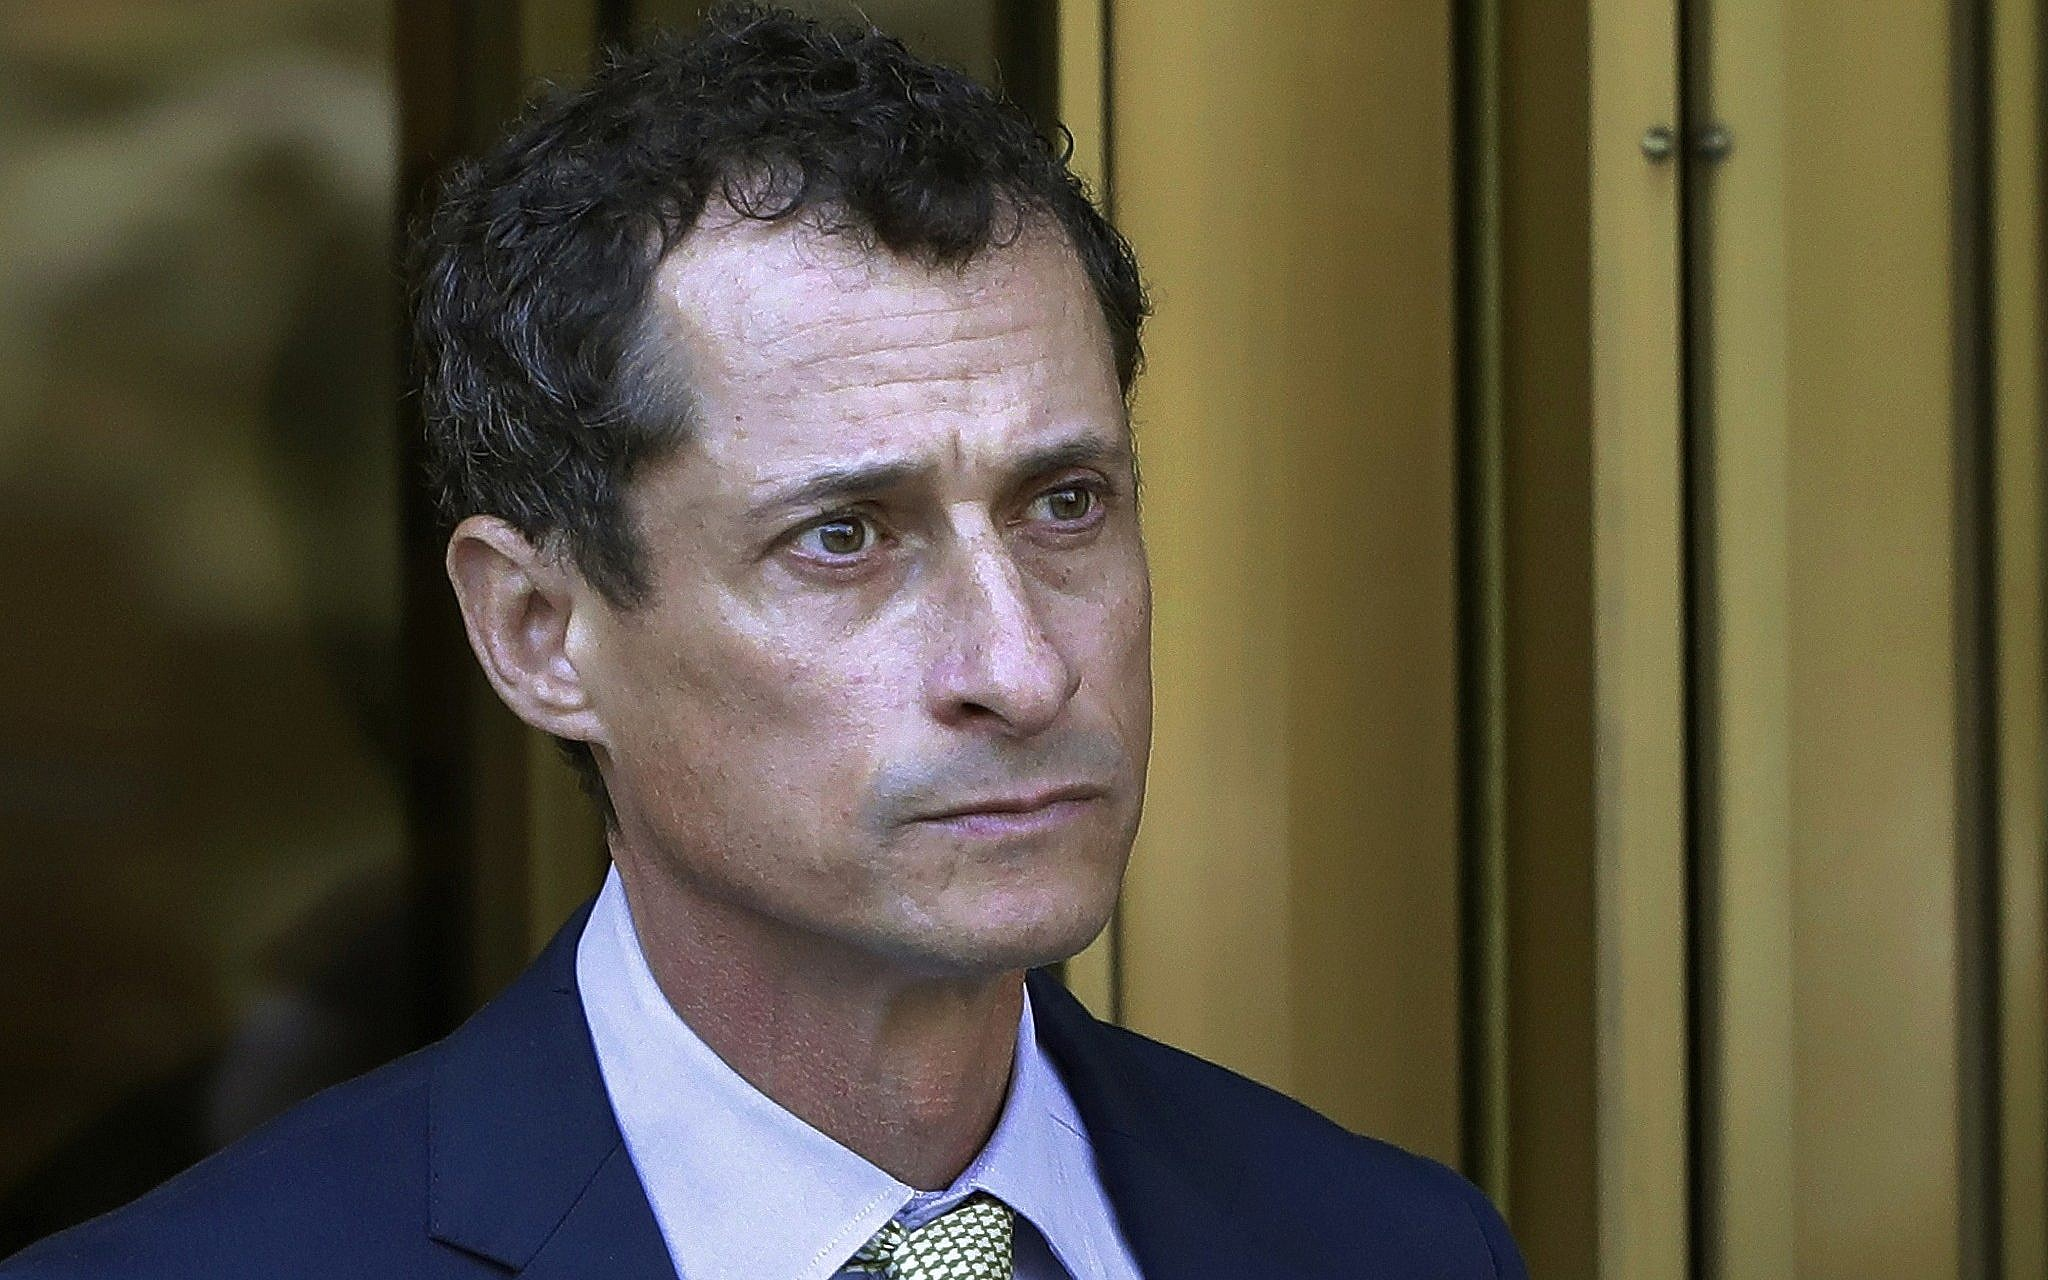 Ex-Rep. Anthony Weiner Completes Prison Sentence for Sexting